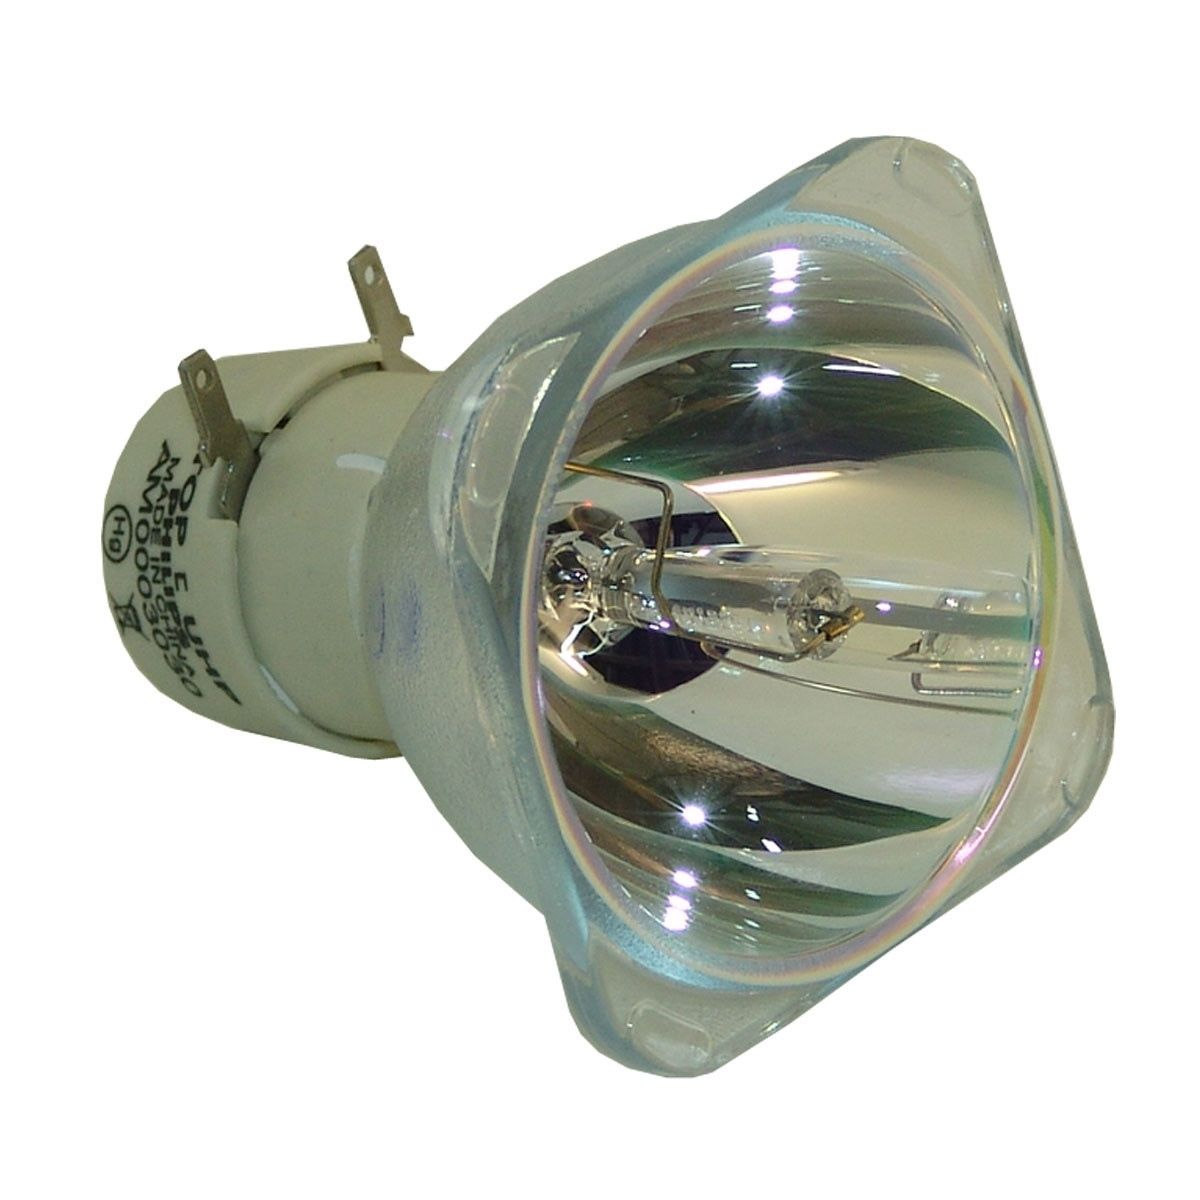 Compatible Bulb MC.JEL11.001 for Acer S1110 T200 XS-S10 T210 T220 XS-W10 S1210Hn S1213 T212 XS-X13 Projector Lamp without Case<br>